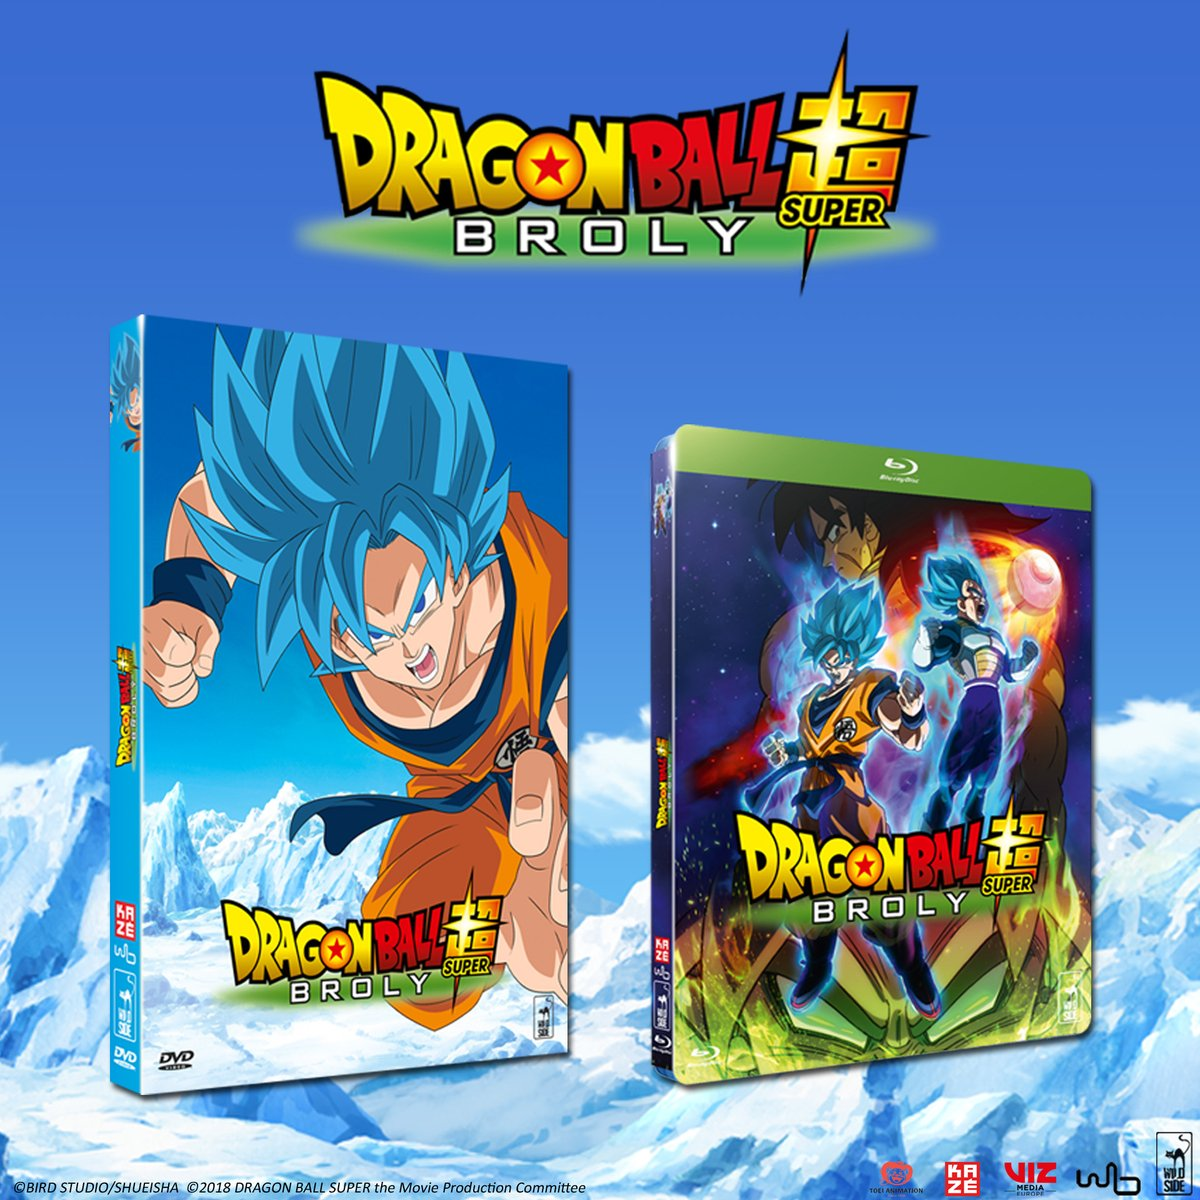 Dragon Ball Super BROLY arrive en France le 17 juillet 2019 en DVD, Blu-ray et VOD